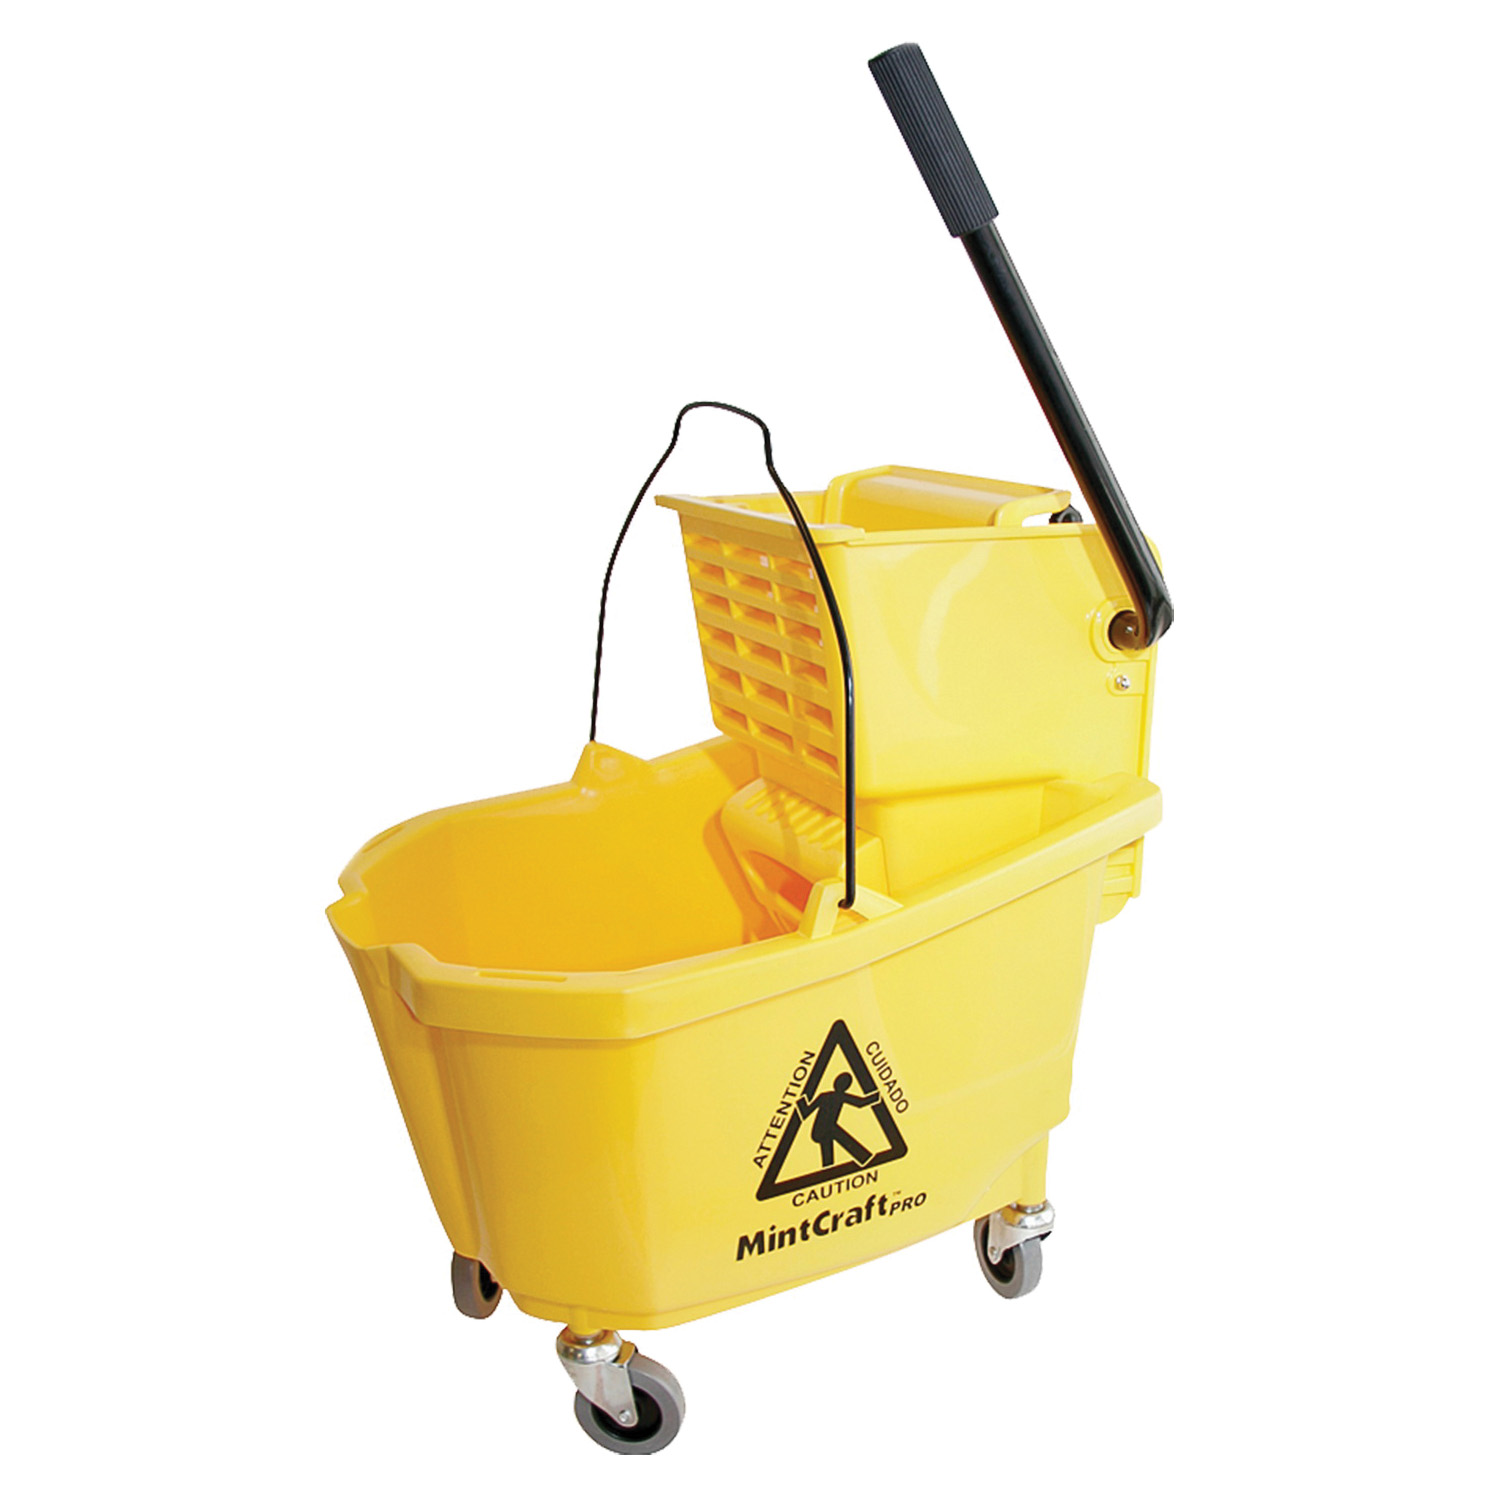 Picture of Simple Spaces 9130 Mop Bucket with Ringer, 32 qt Capacity, Plastic Bucket/Pail, Plastic Wringer, Yellow